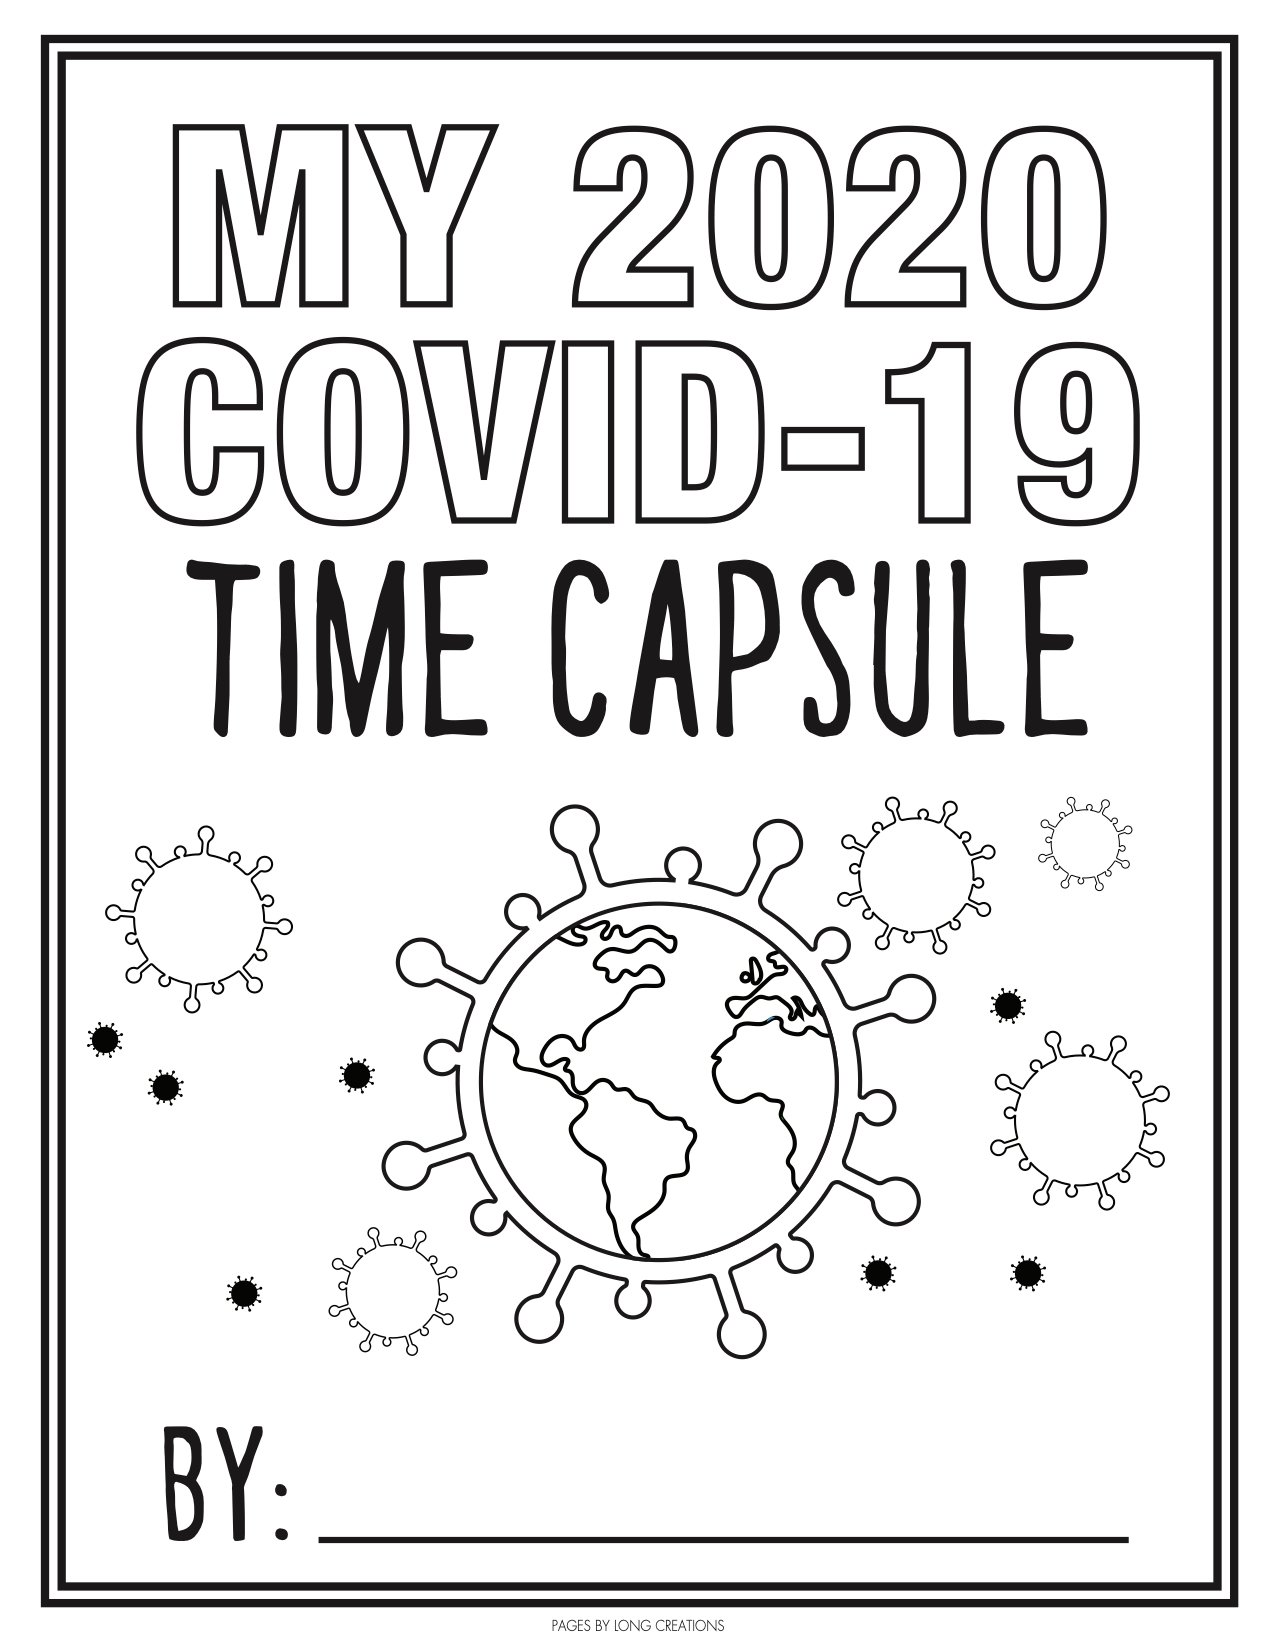 Children's Activity: COVID-19 Time Capsule - 9 & 10 News